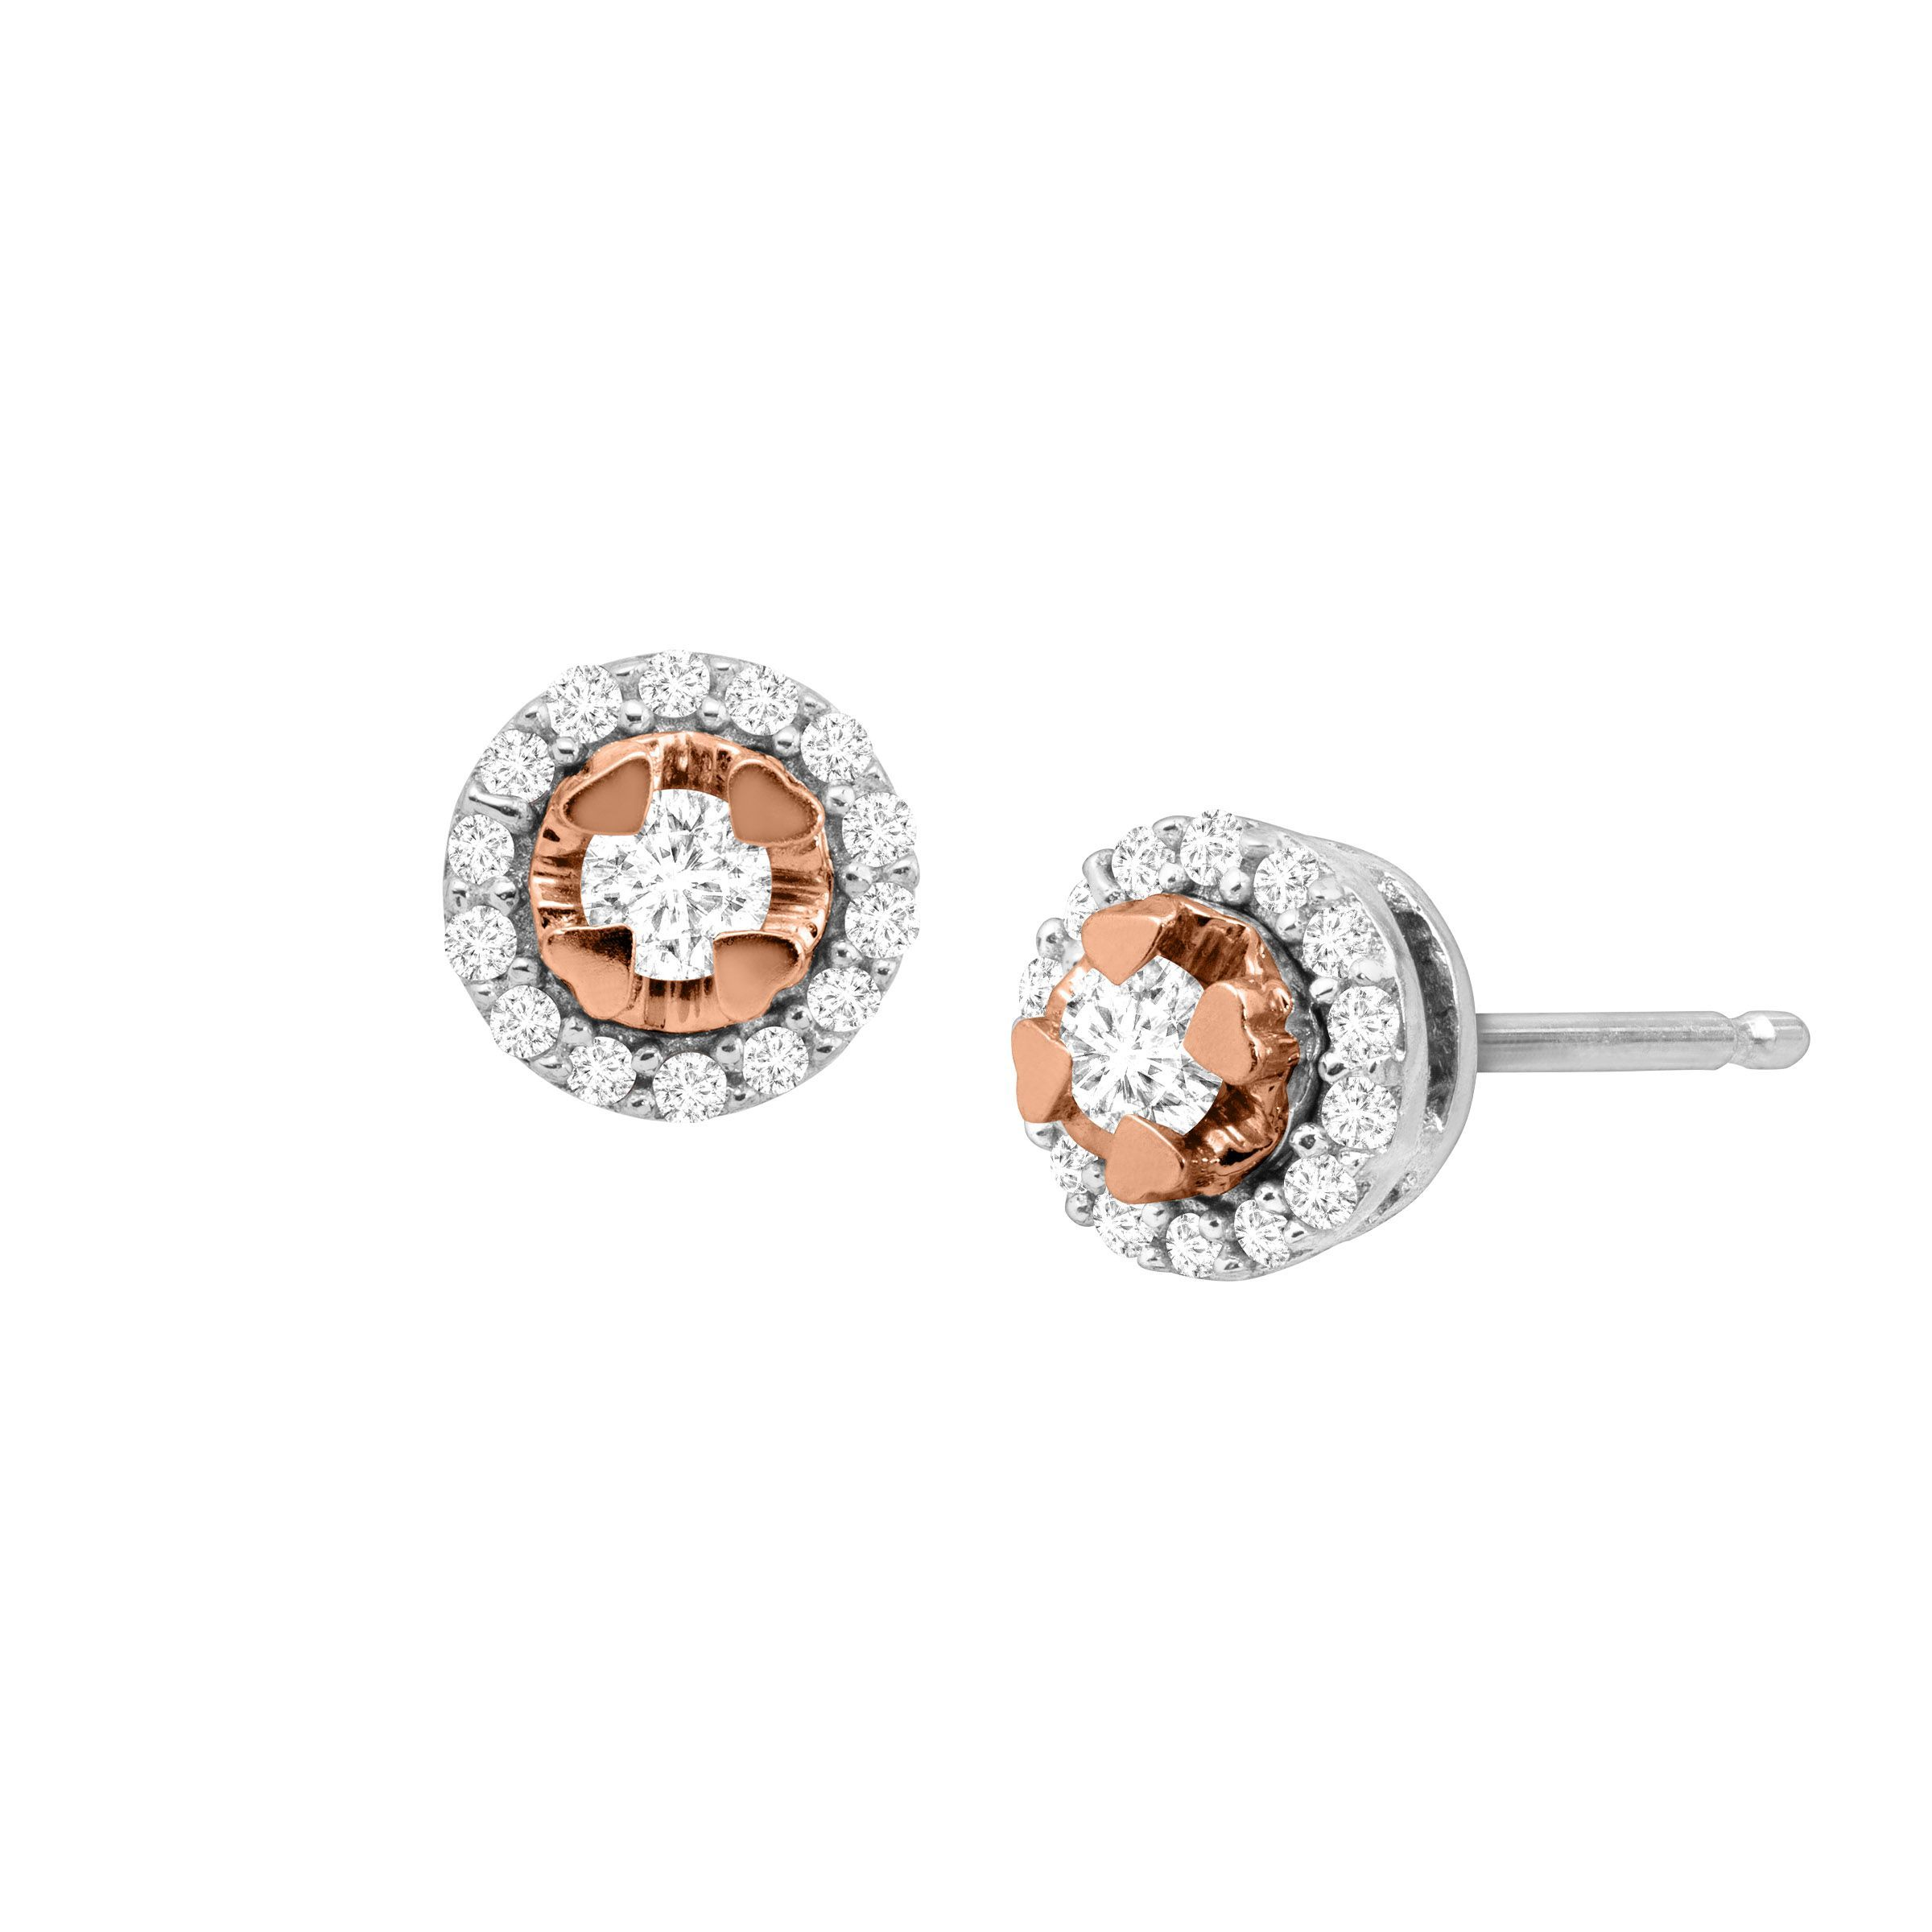 2468c24ca 1/5 ct Diamond Halo Stud Earrings in 18K Rose Gold-Plated Sterling Silver.  Finecraft